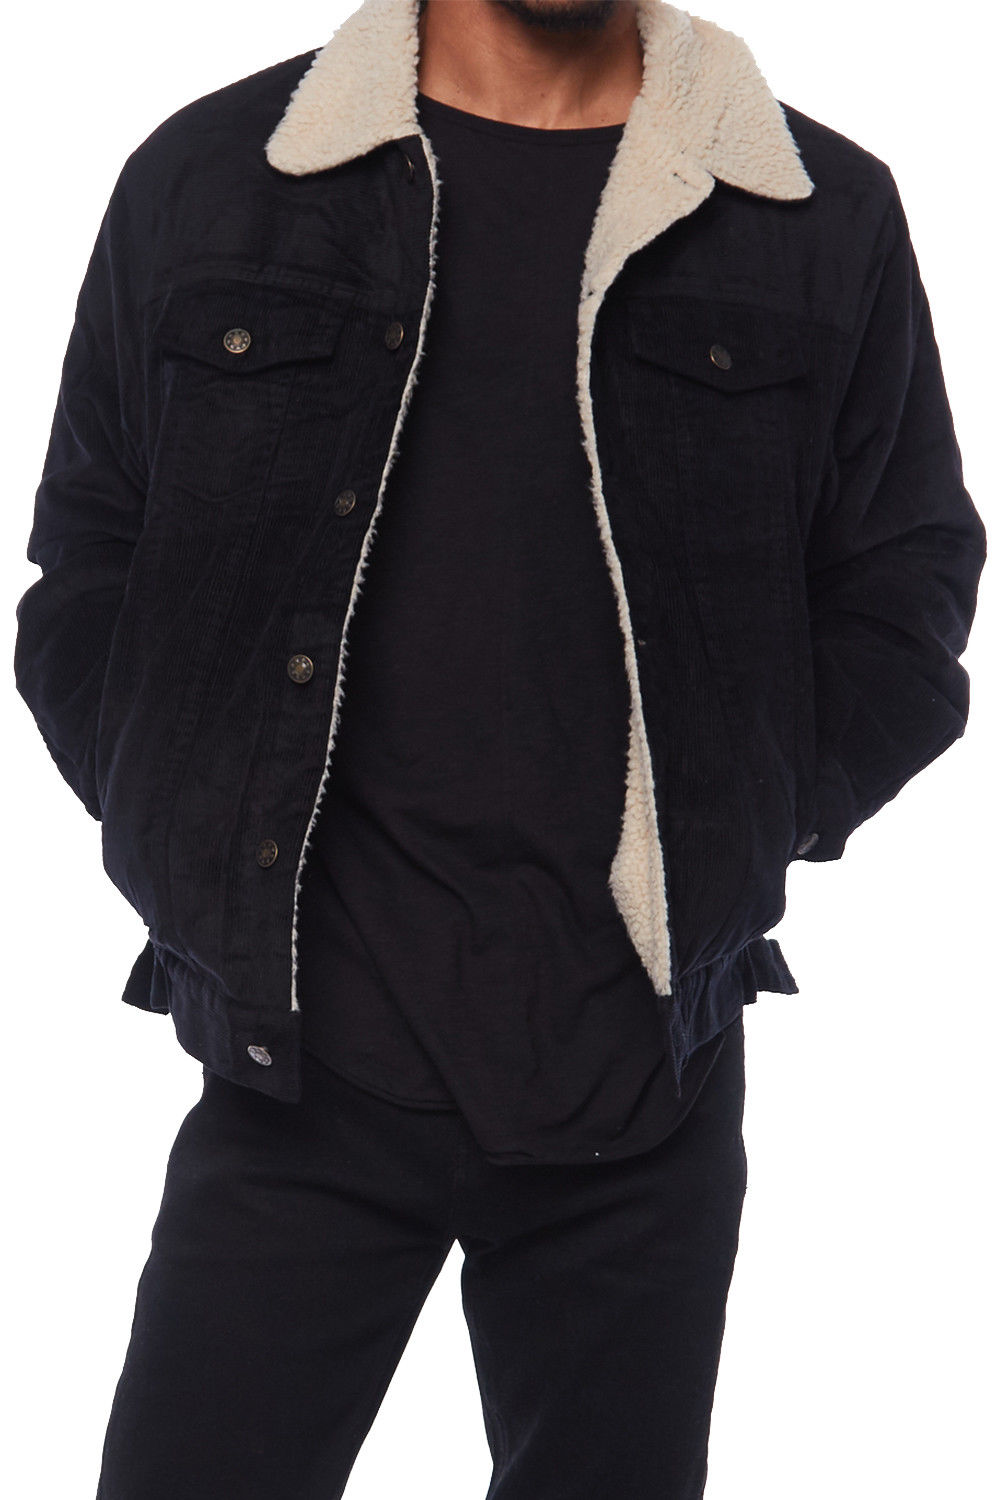 Mens Warm Winter Fur Lining Wool Velour Thick Jacket HK94200 by